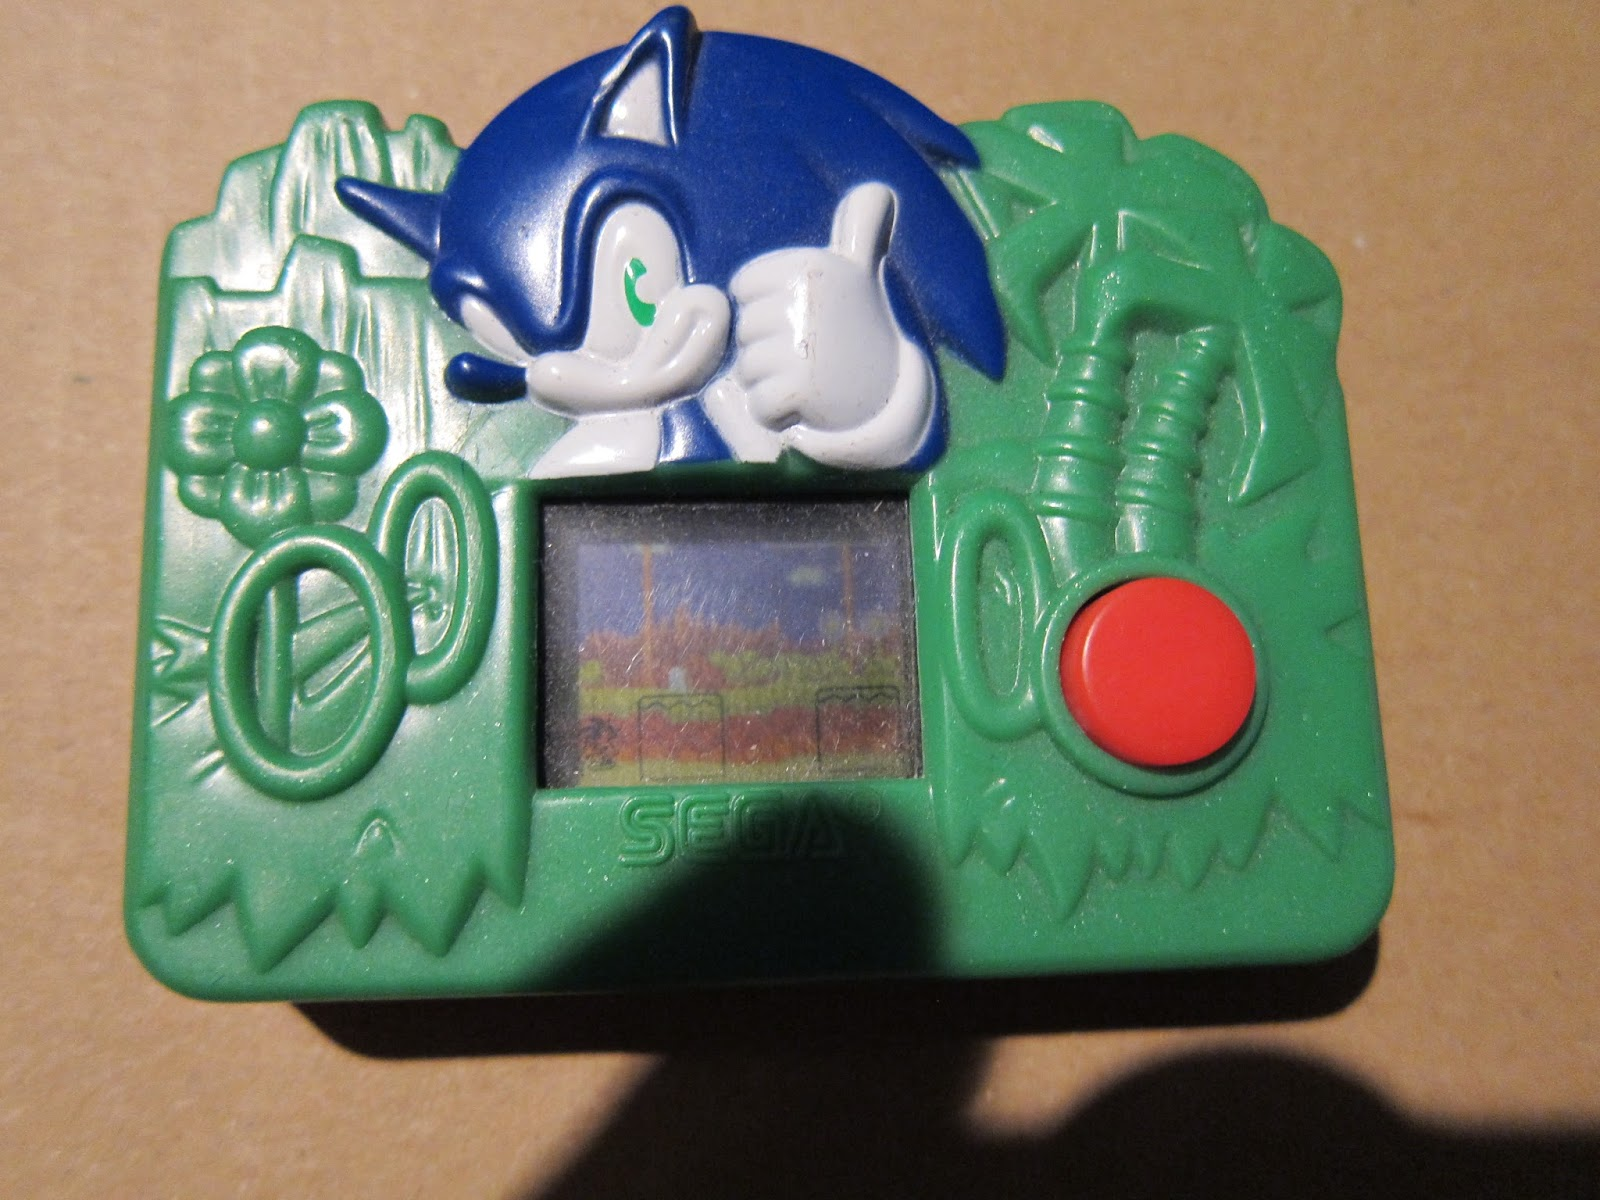 Toys From The 2000s : Dusty old games mid s mcdonald lcd toys